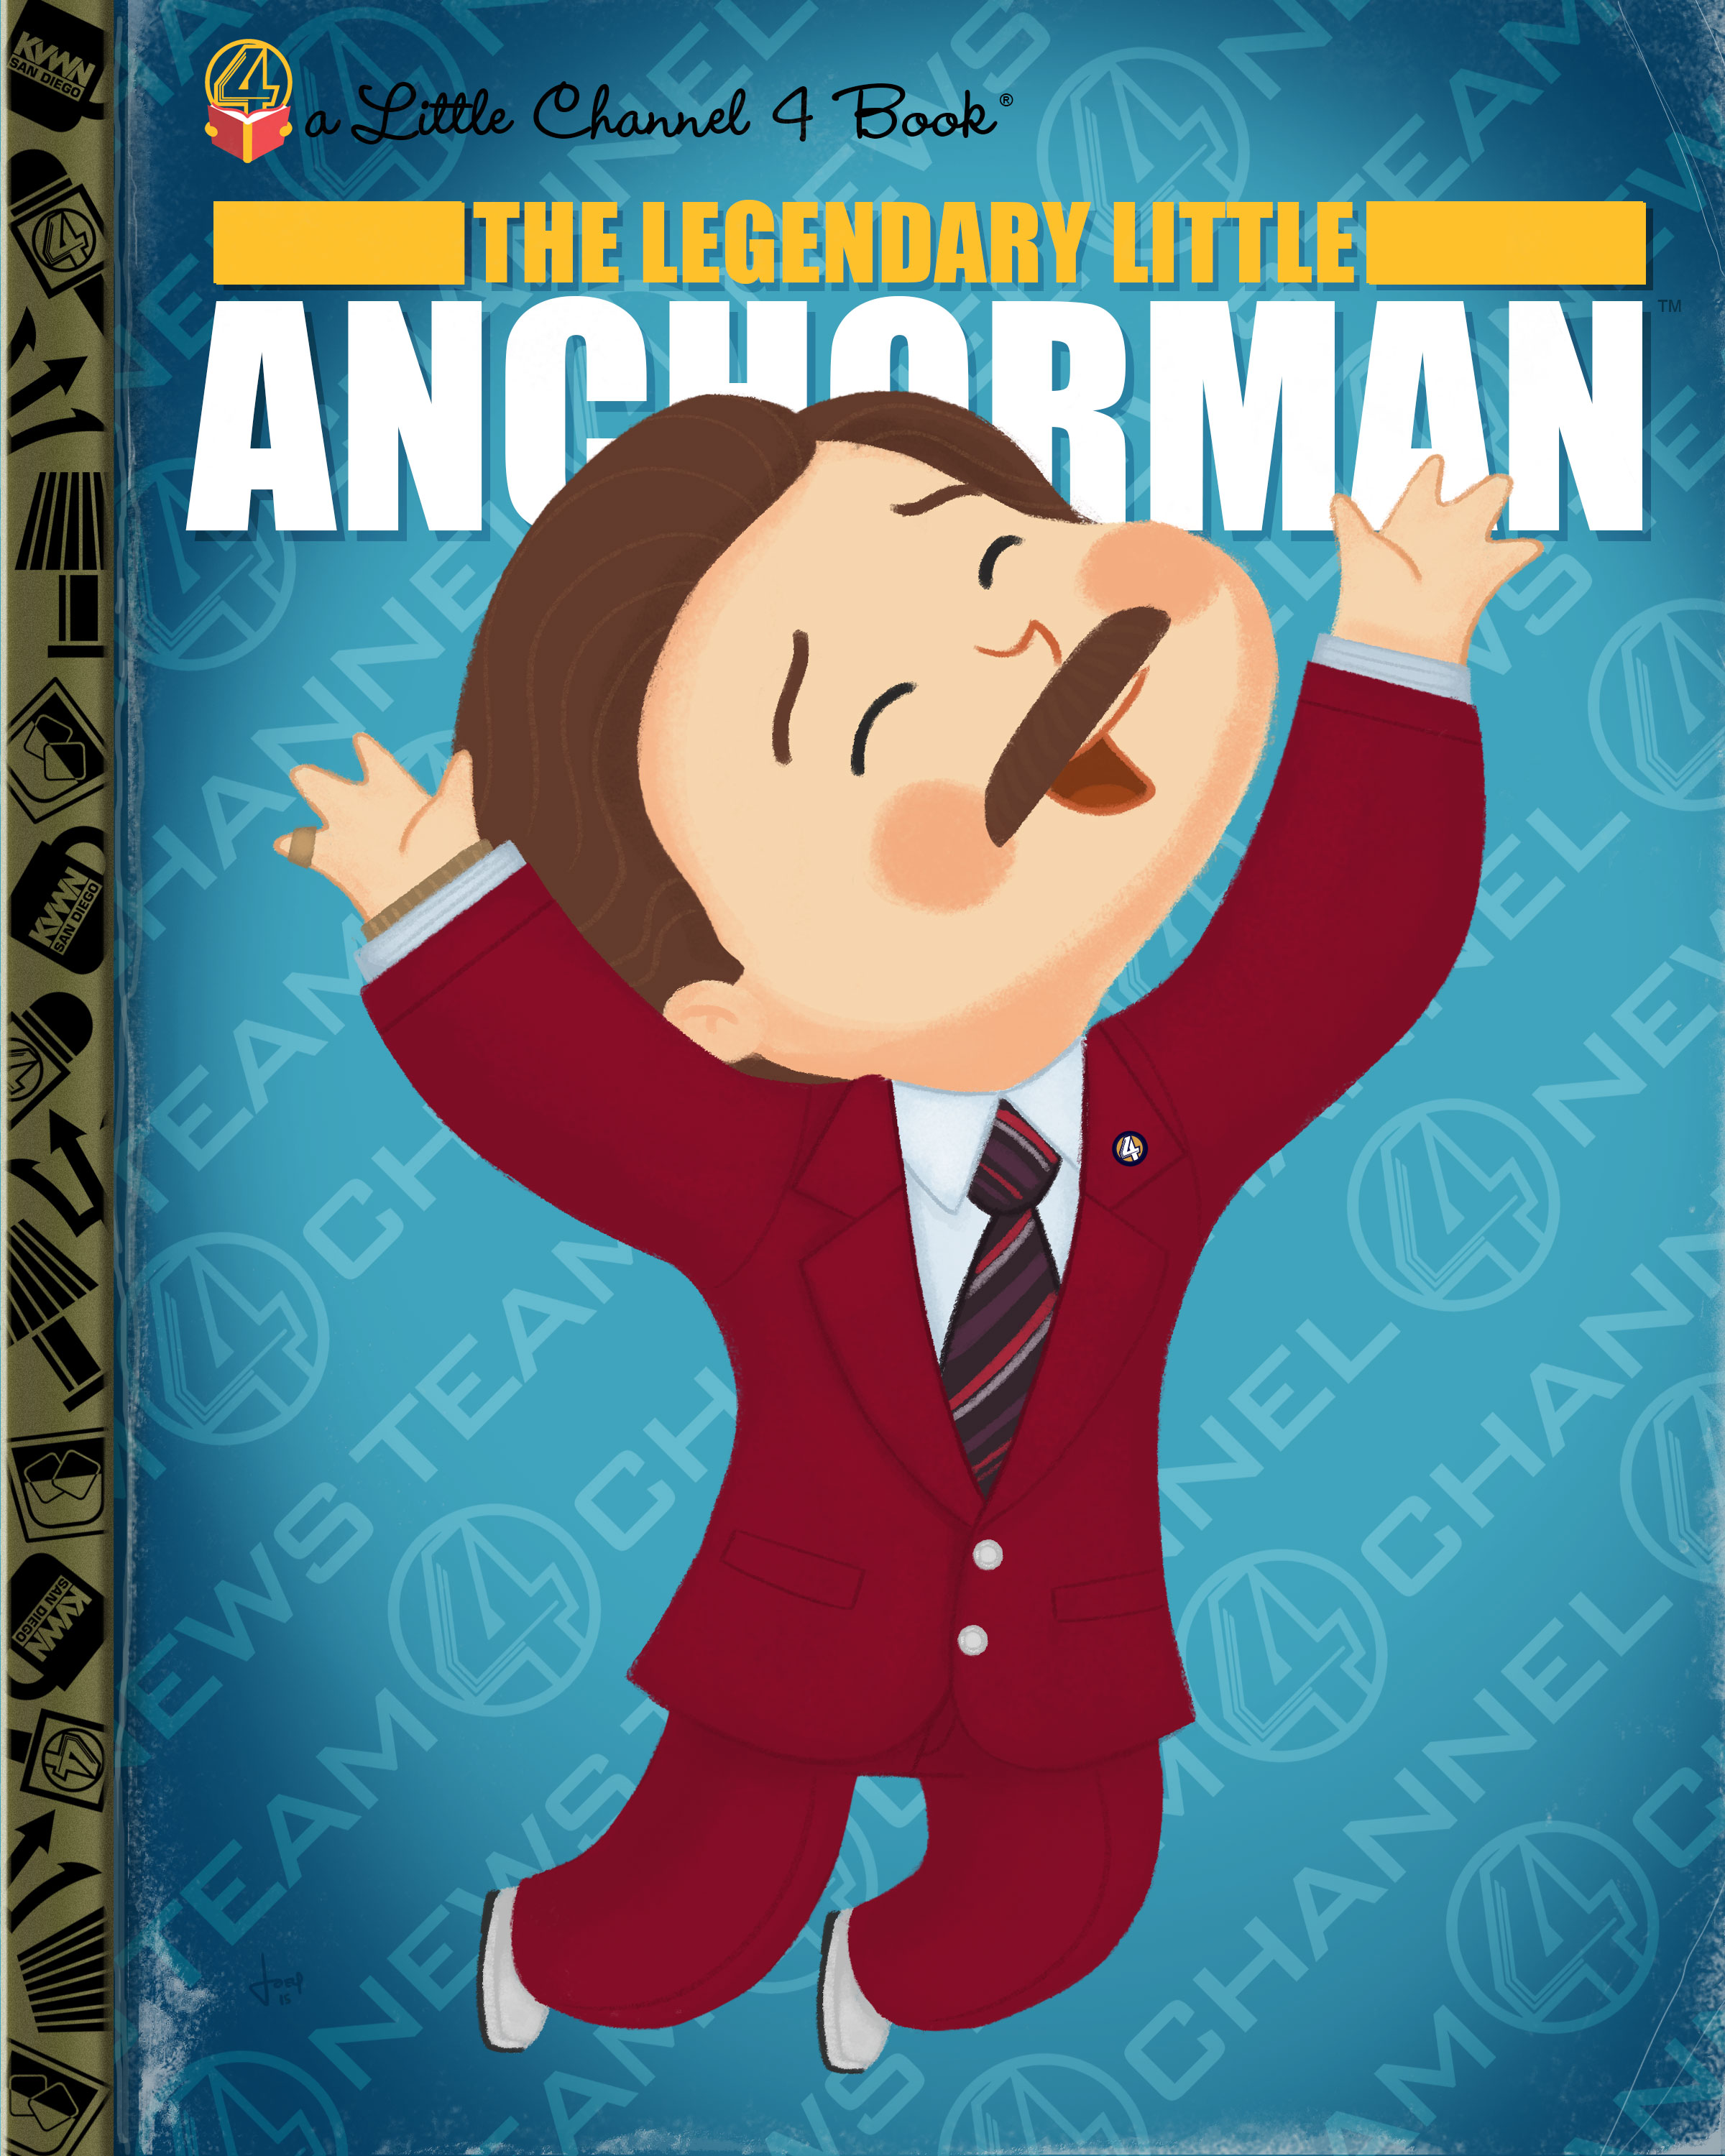 Anchorman-25.jpg